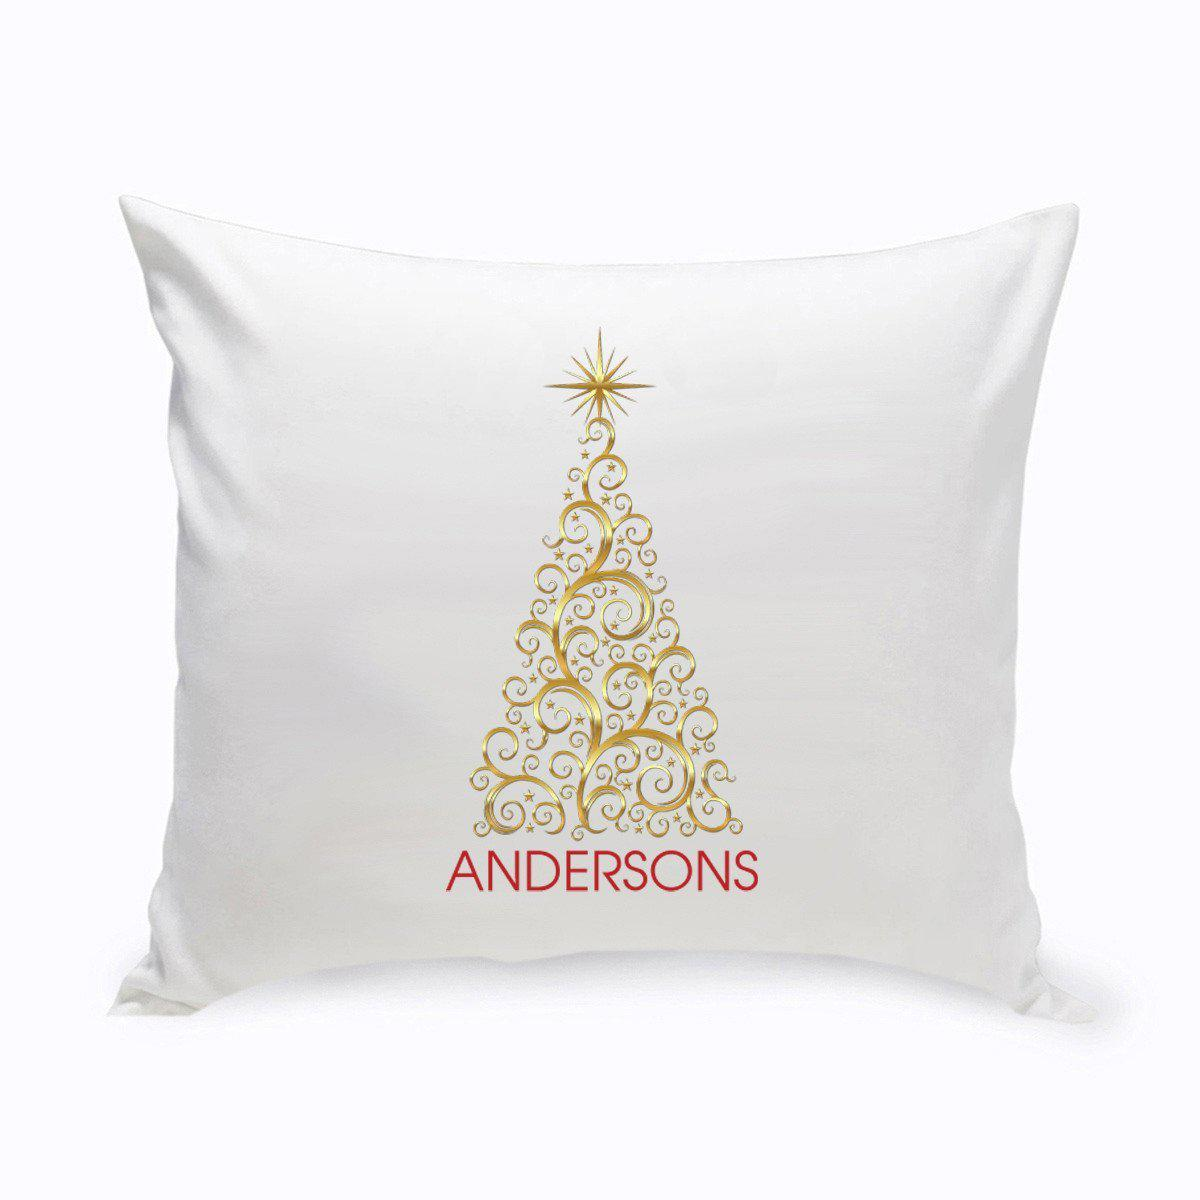 Personalized Gold Christmas Tree Holiday Throw Pillows